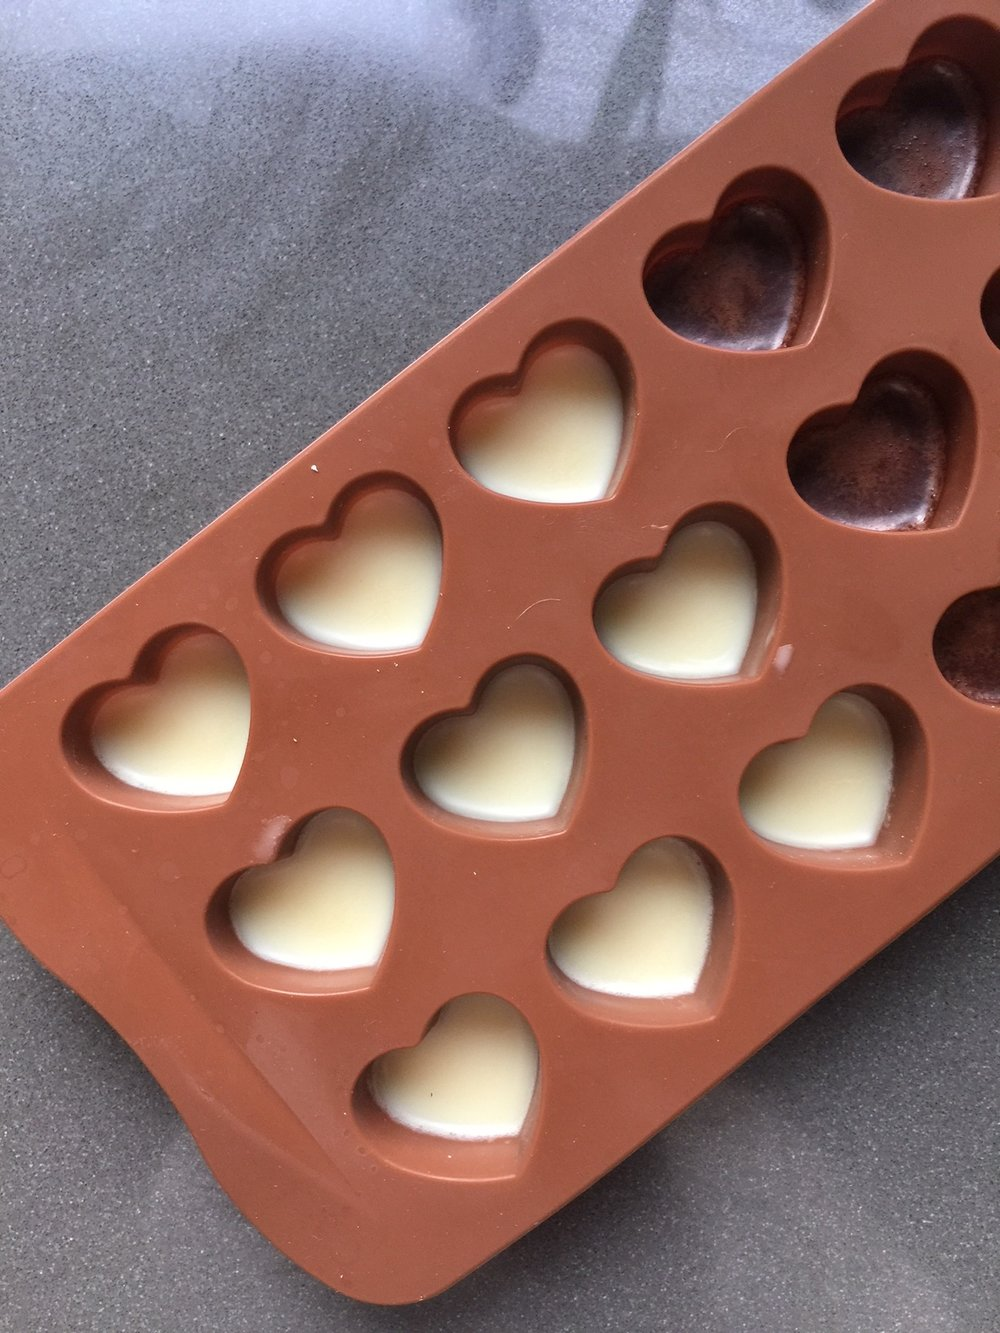 If you're making half & half, make sure you freeze it before adding the other half, or chocolates will mix.